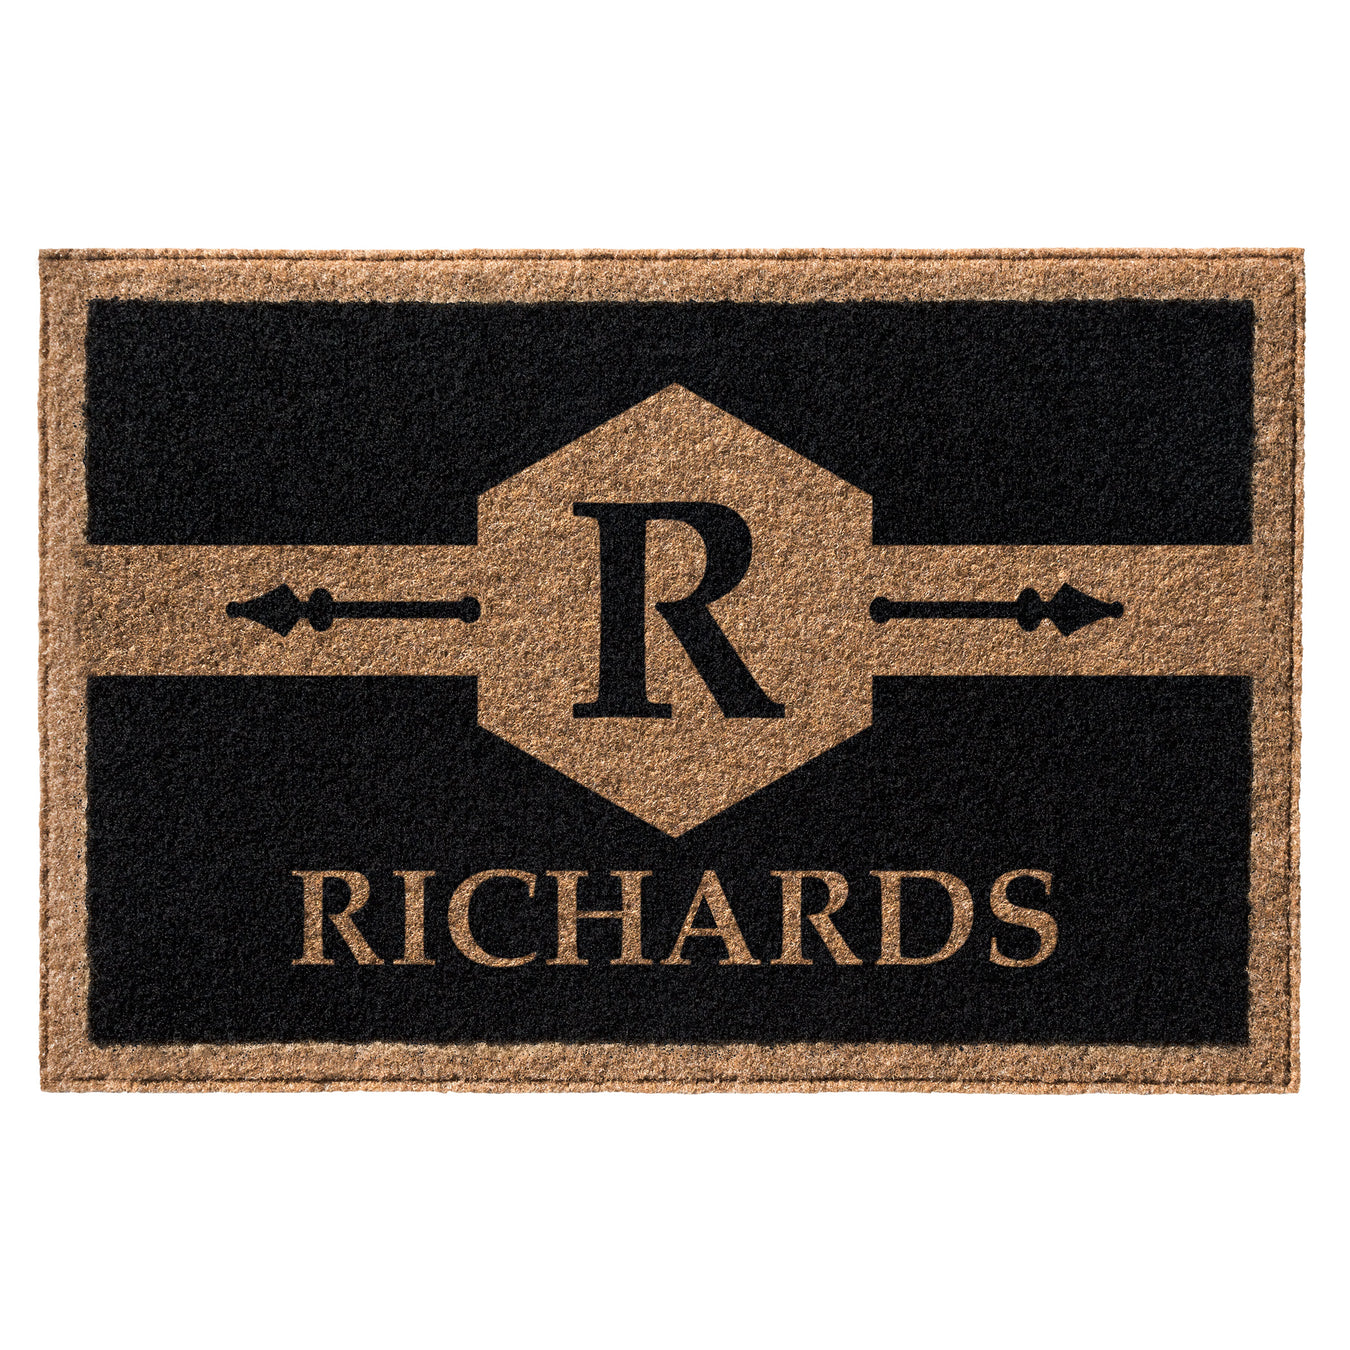 Infinity Custom Mats™ All-Weather Personalized Door Mat - STYLE: RICHARDS COLOR:BLACK